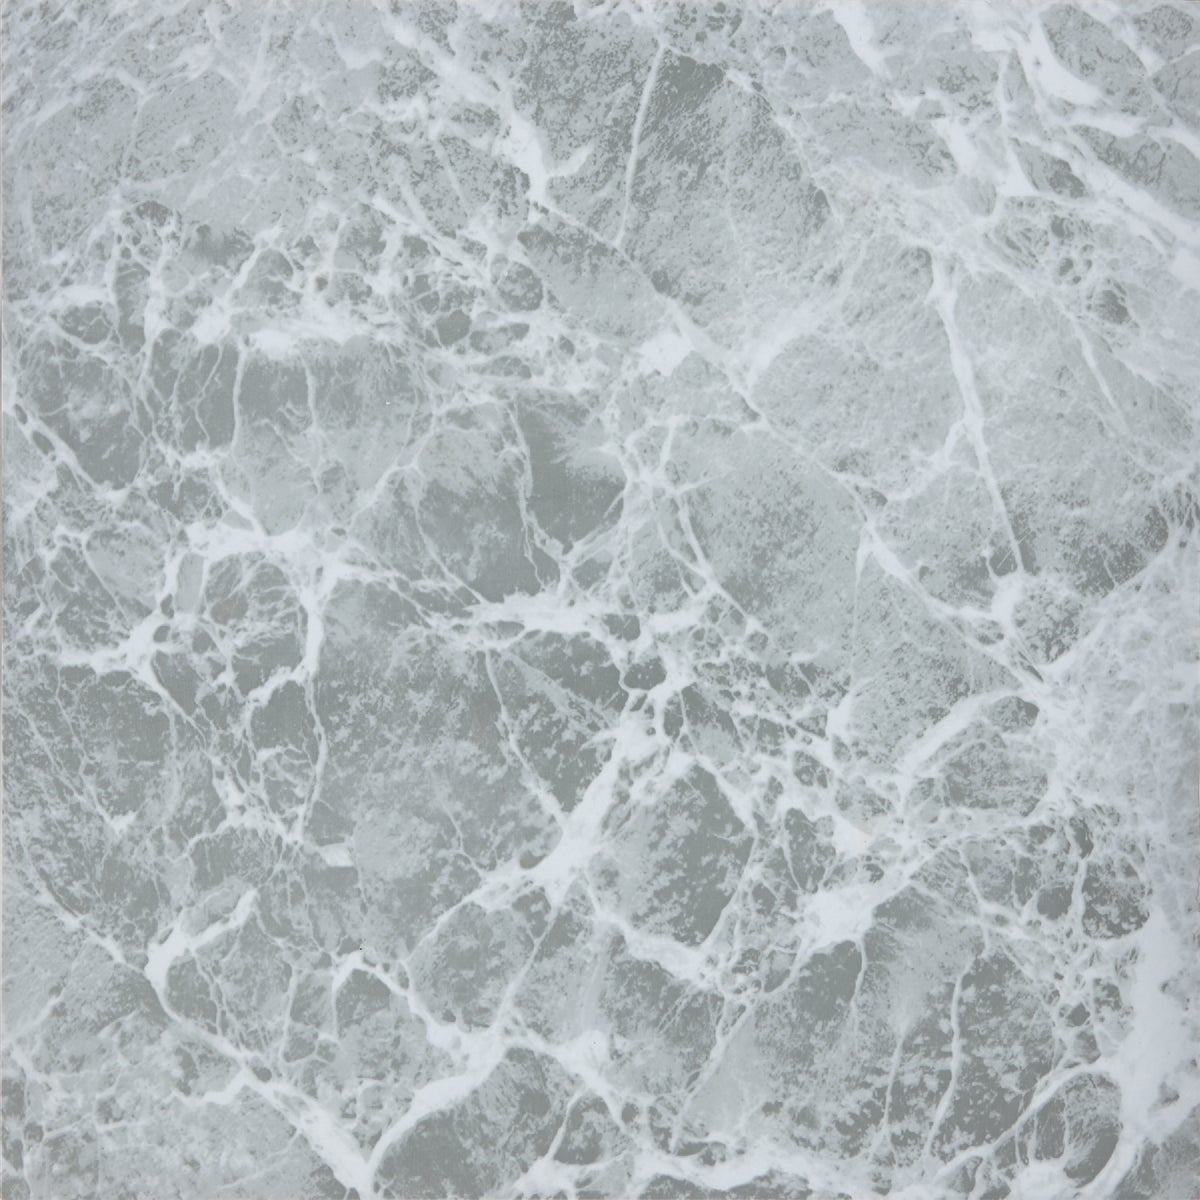 12X12 GRAY MRBL VNL TILE - KC91111 by Do it Best Global Sourcing